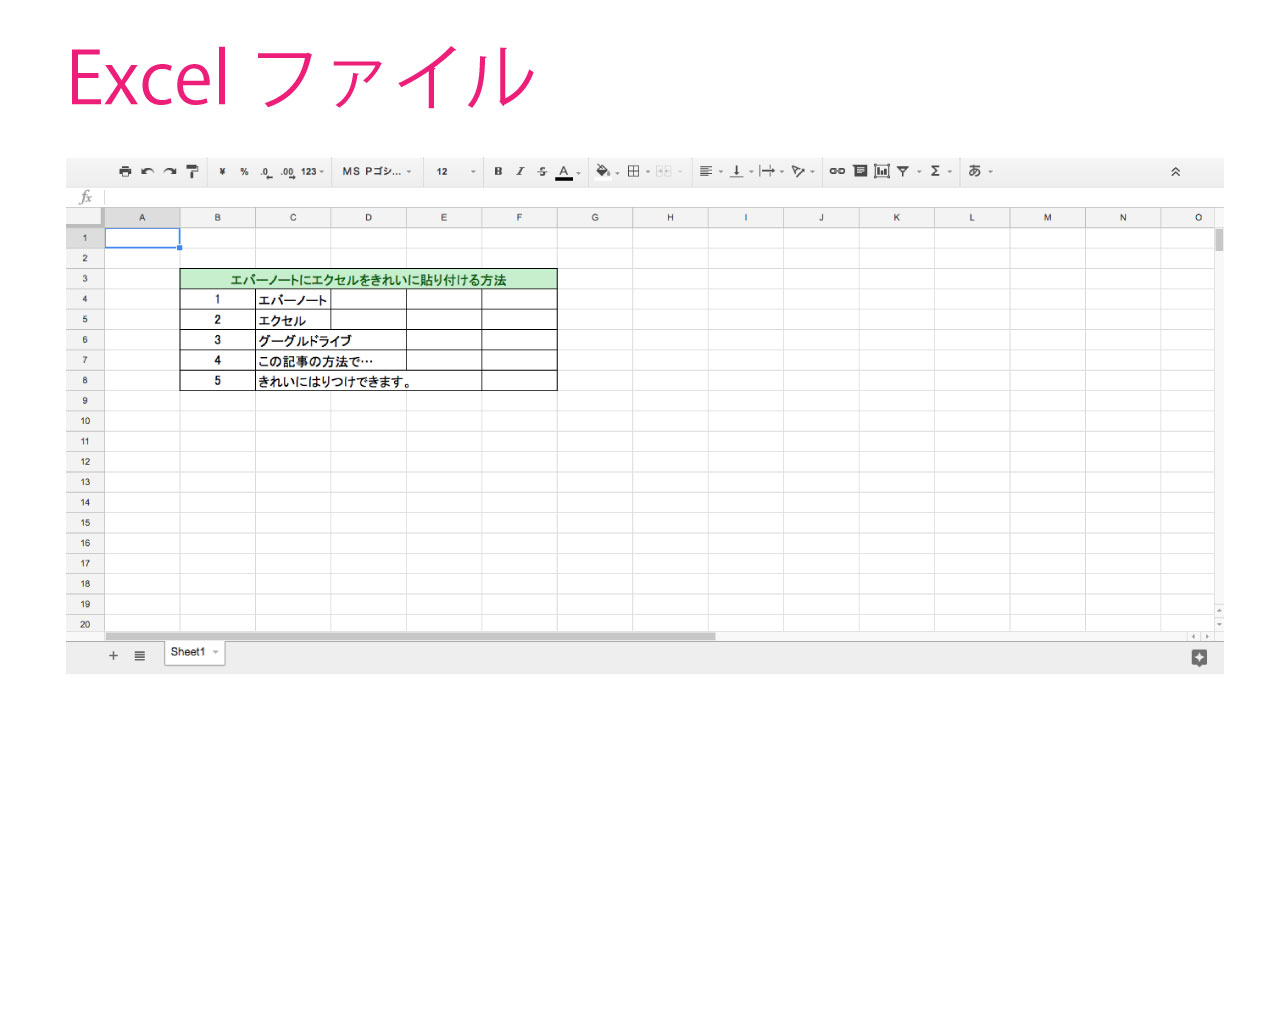 evernote-excel-copy-and-paste-2